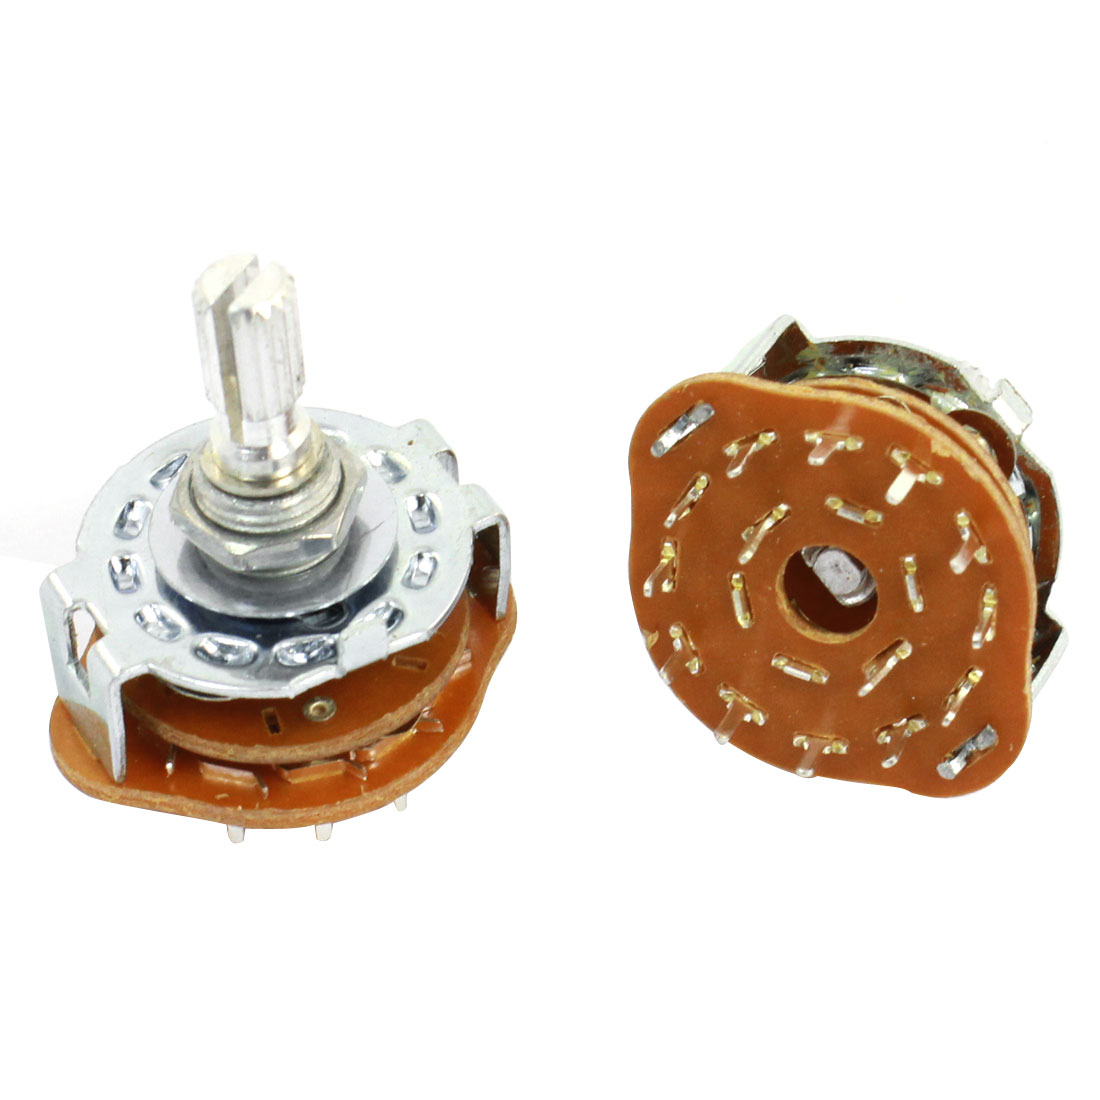 2 Pcs 2P6T 2 Pole 6 Position 6mm Knurled Shaft Dia Band Selector Rotary Switch